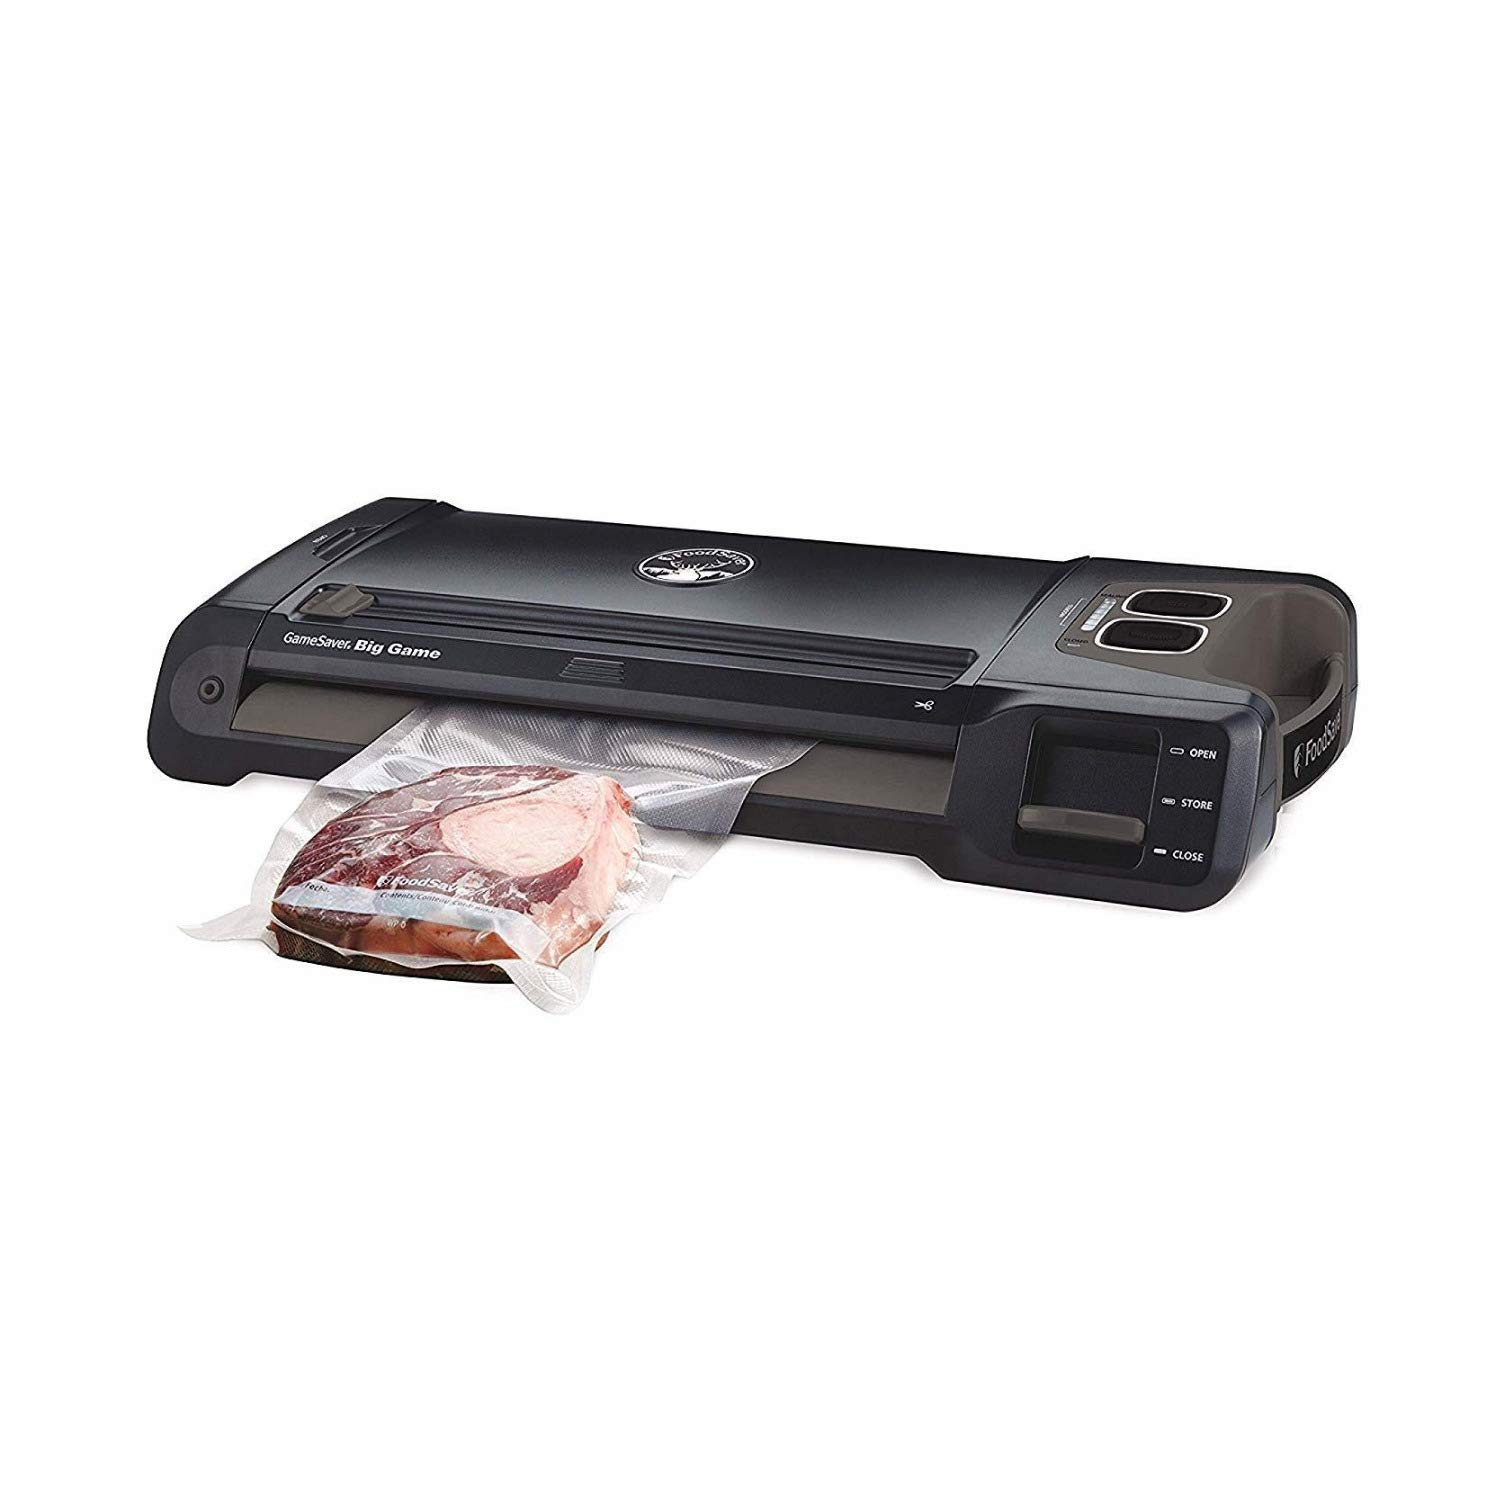 FoodSaver Vacuum Sealer GM710-000 GameSaver Big Game Sealing System, reg, Black by FoodSaver